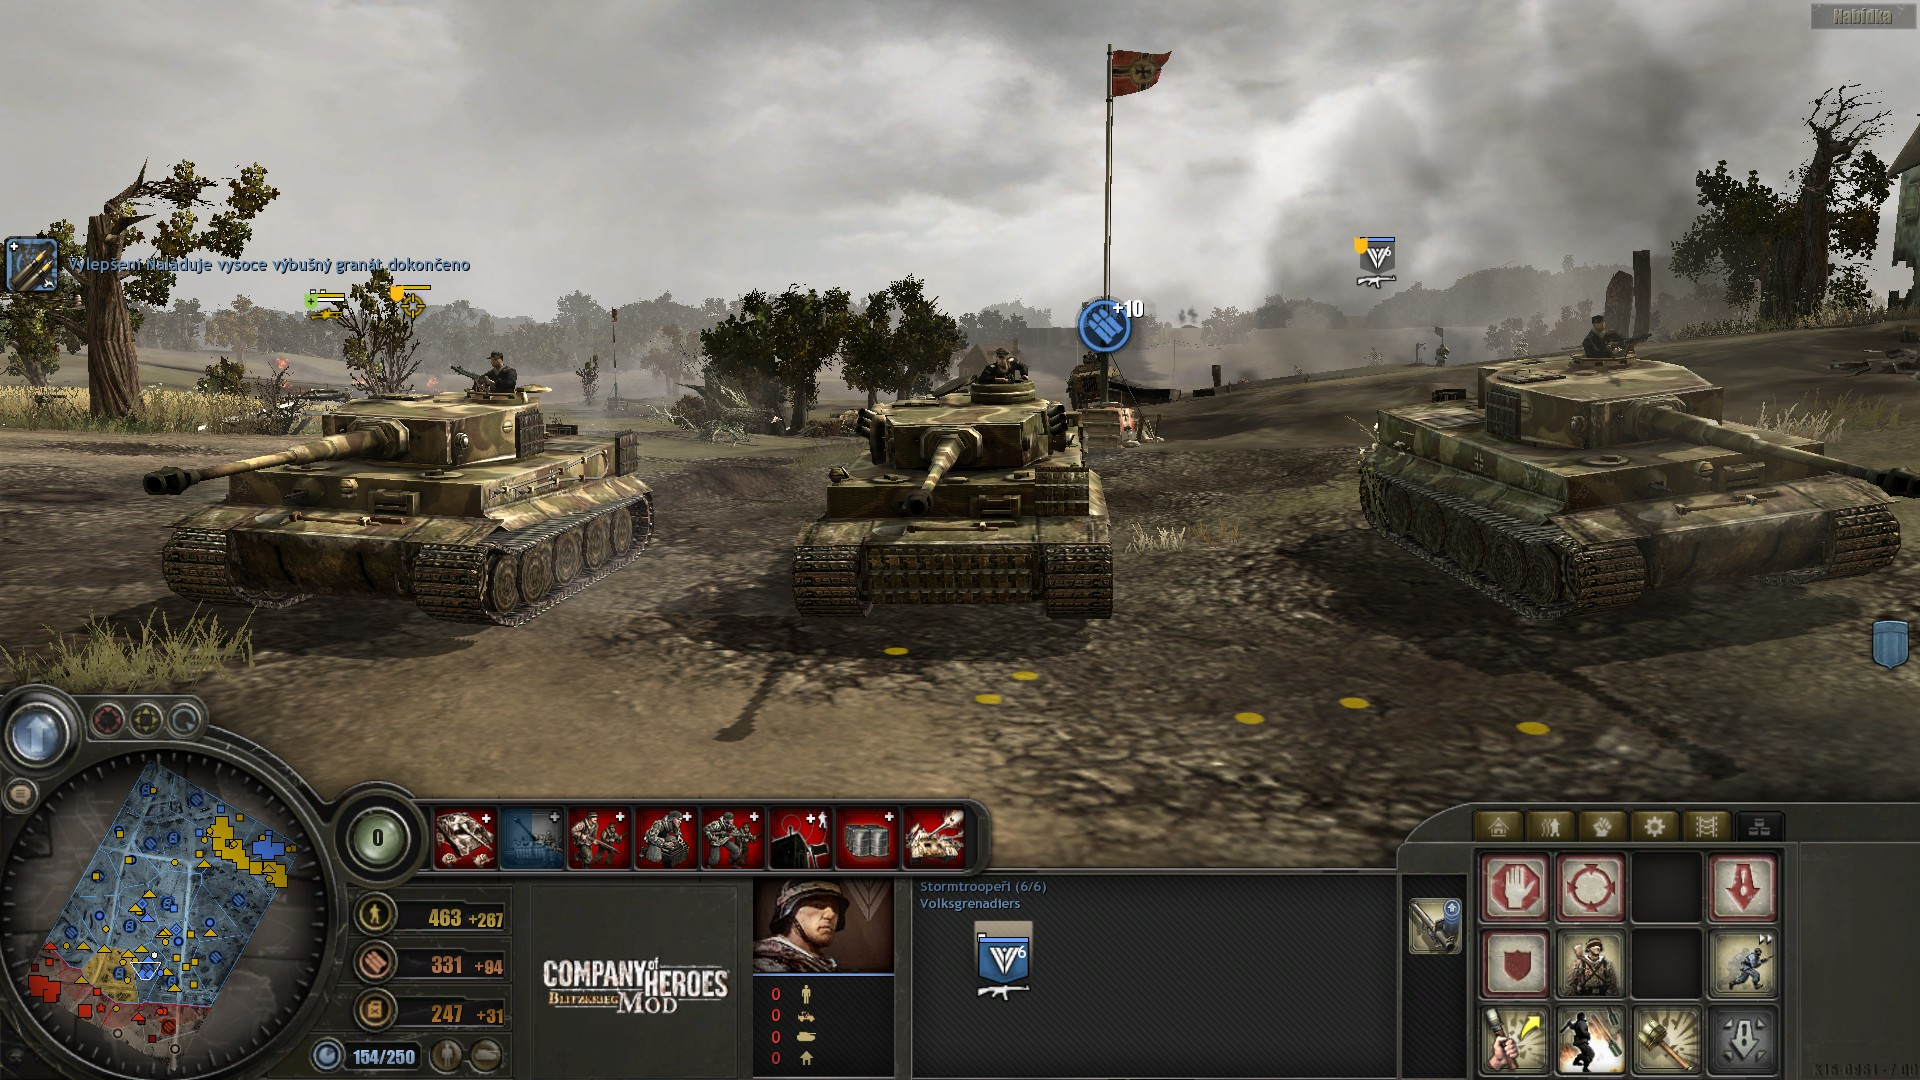 Steam Greenlight :: Blitzkrieg Mod